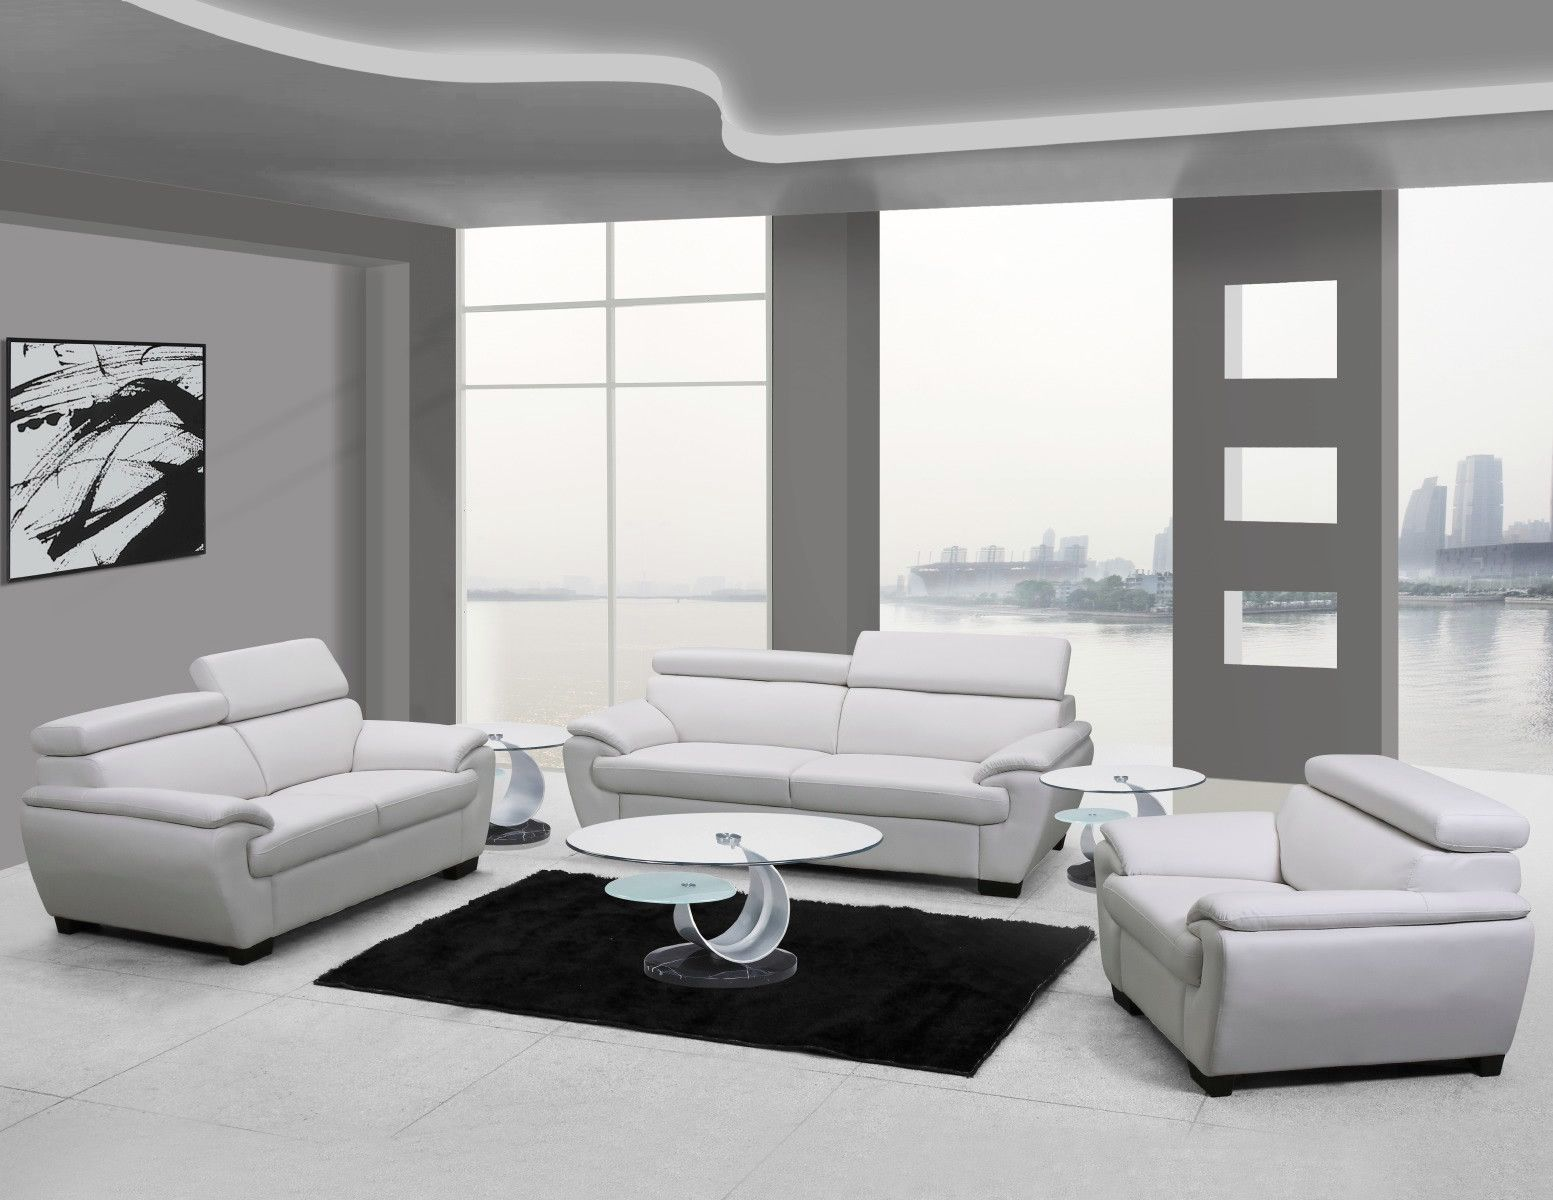 10 Top White Leather Living Room